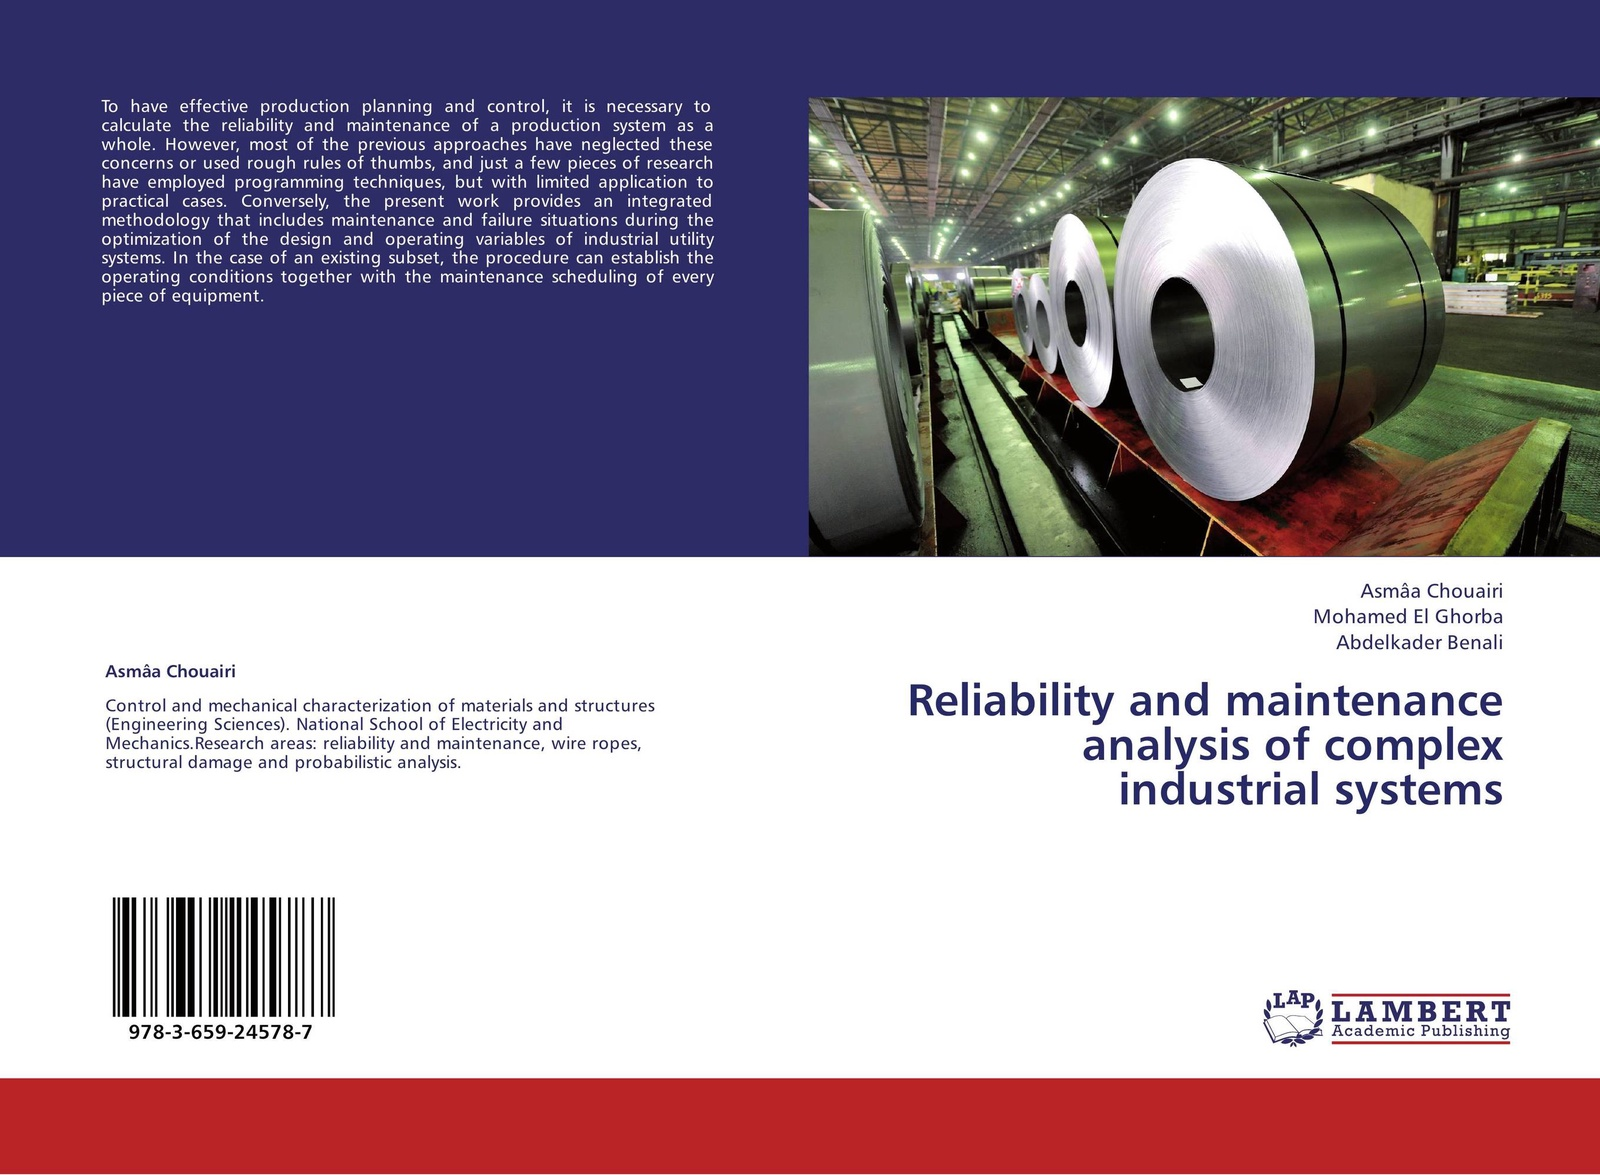 Asmâa Chouairi,Mohamed El Ghorba and Abdelkader Benali Reliability and maintenance analysis of complex industrial systems